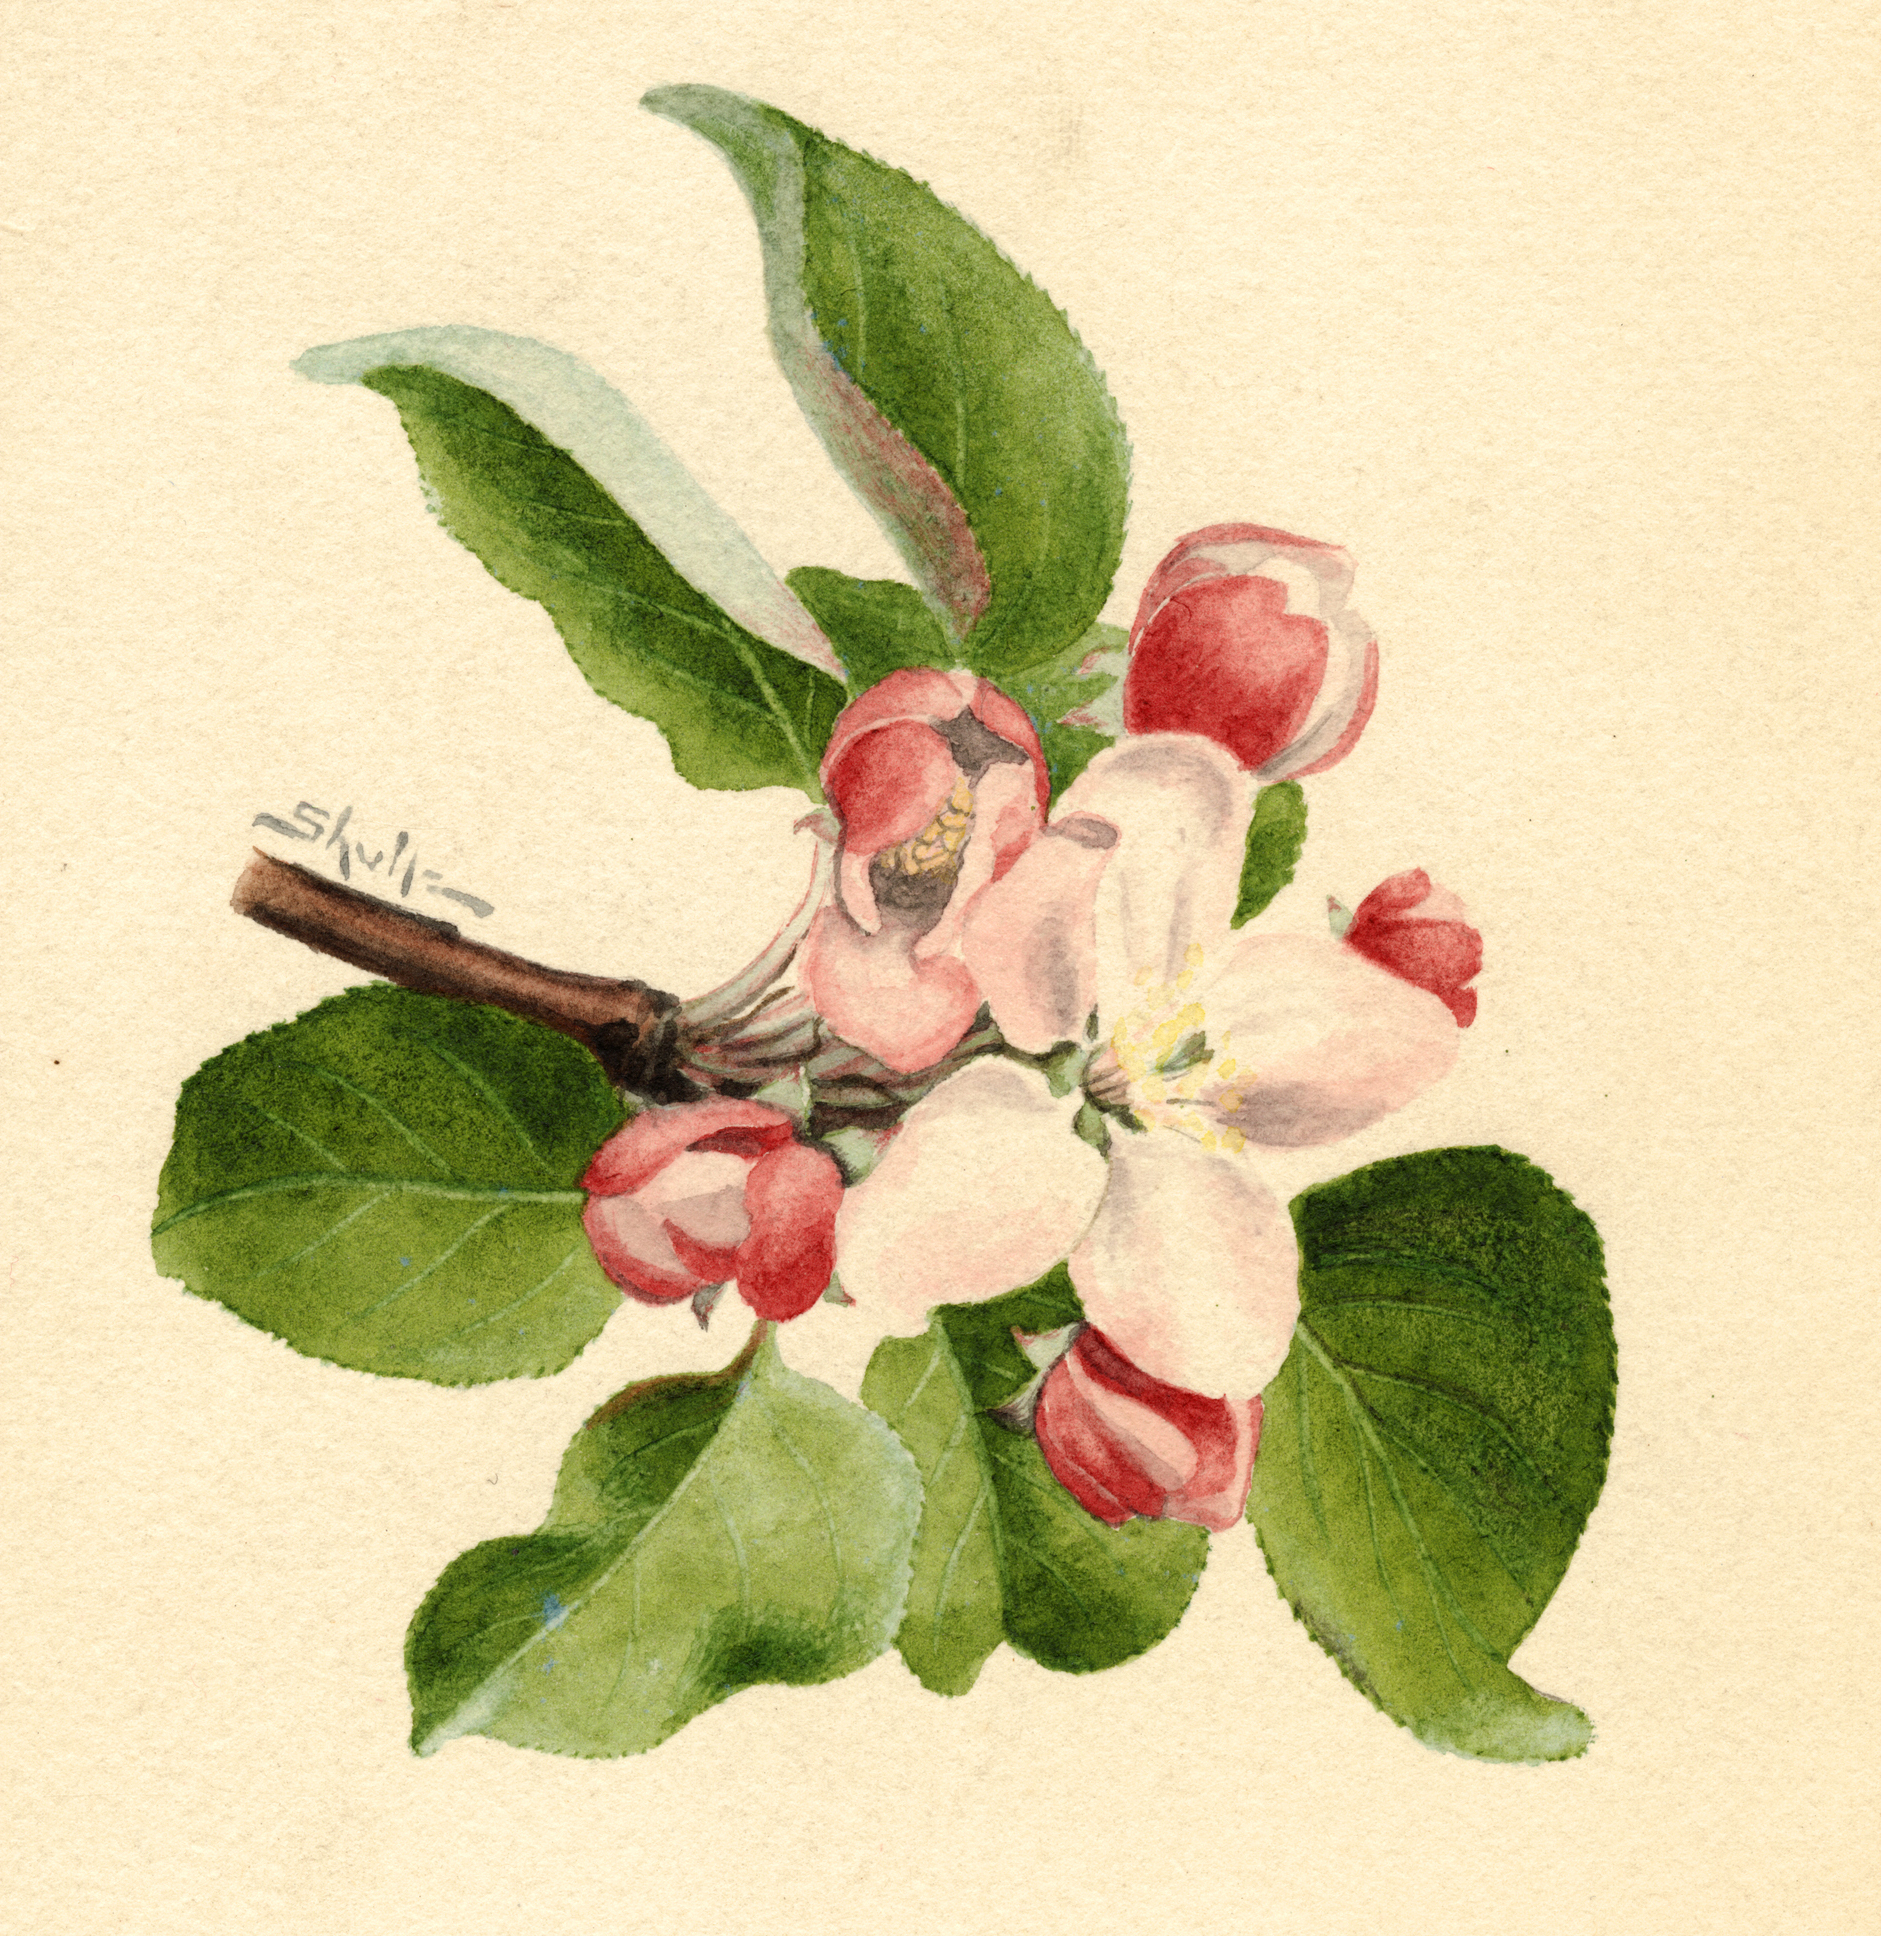 Vintage Botanical Prints - 61 in a series - Malus domestica from Agriculture Pomological Watercolor Collection (1910)